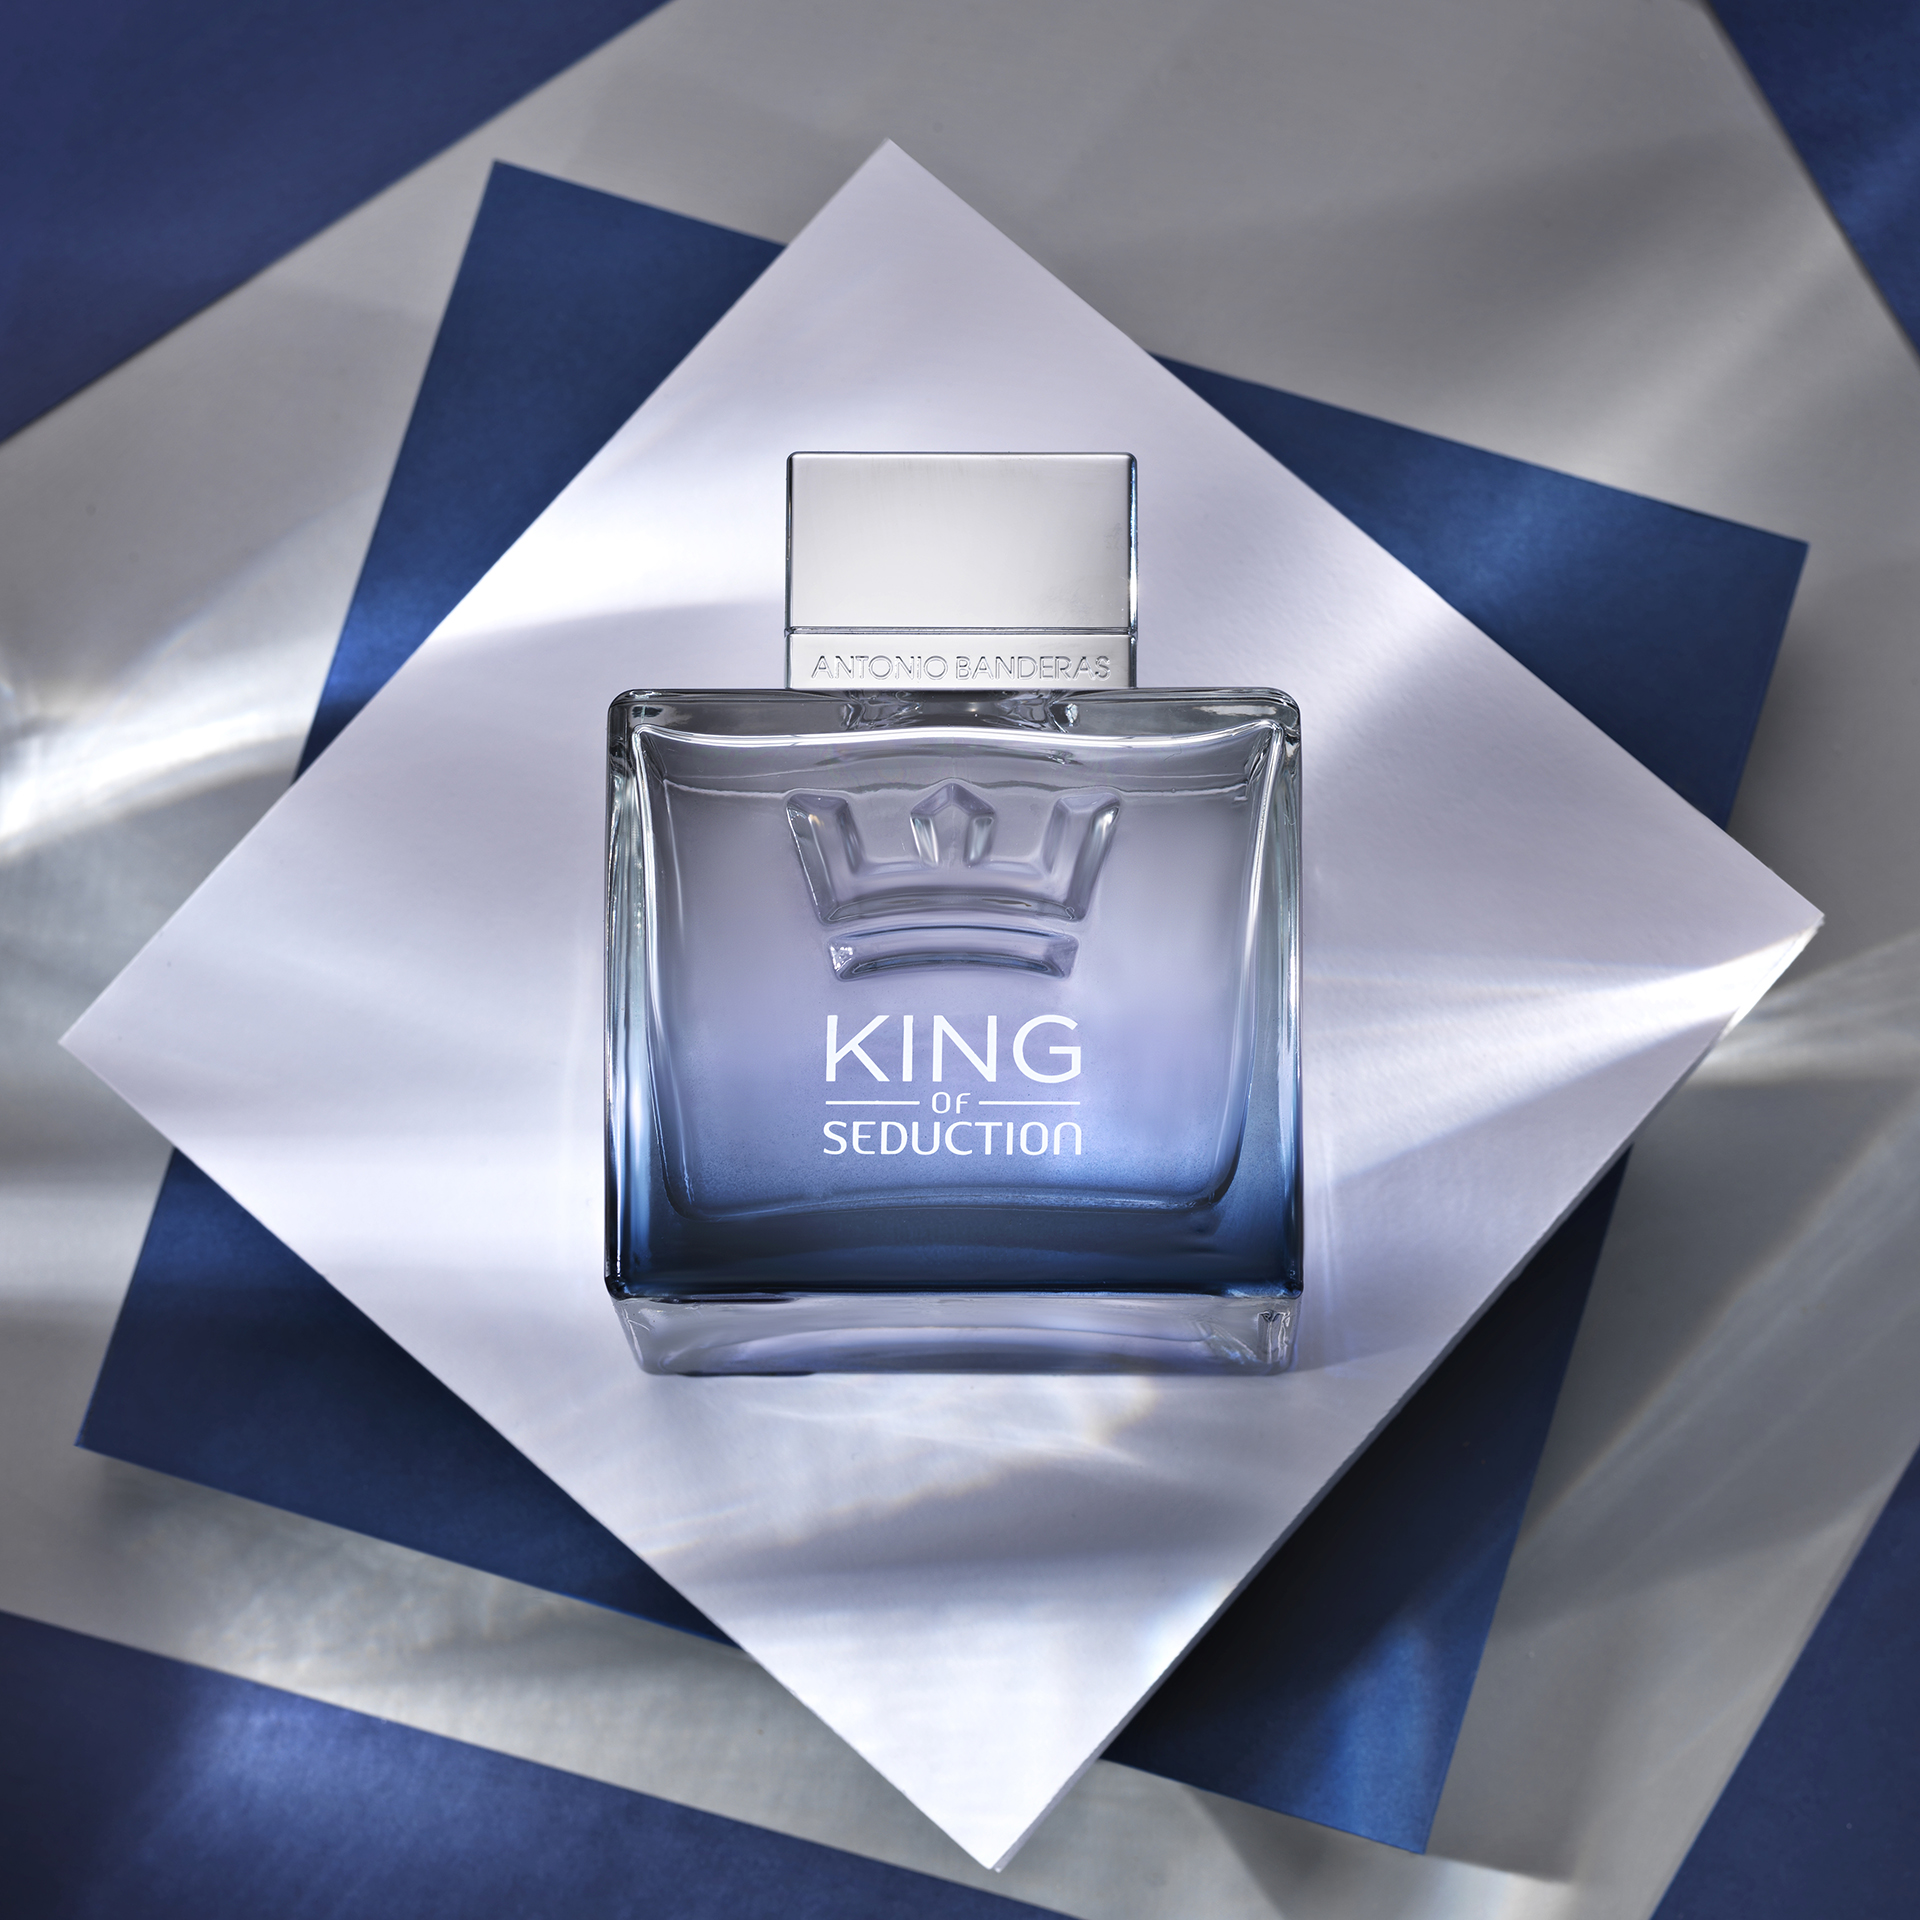 Perfume Antonio Banderas King Of Seduction Eau De Toilette Perfume 50 Ml